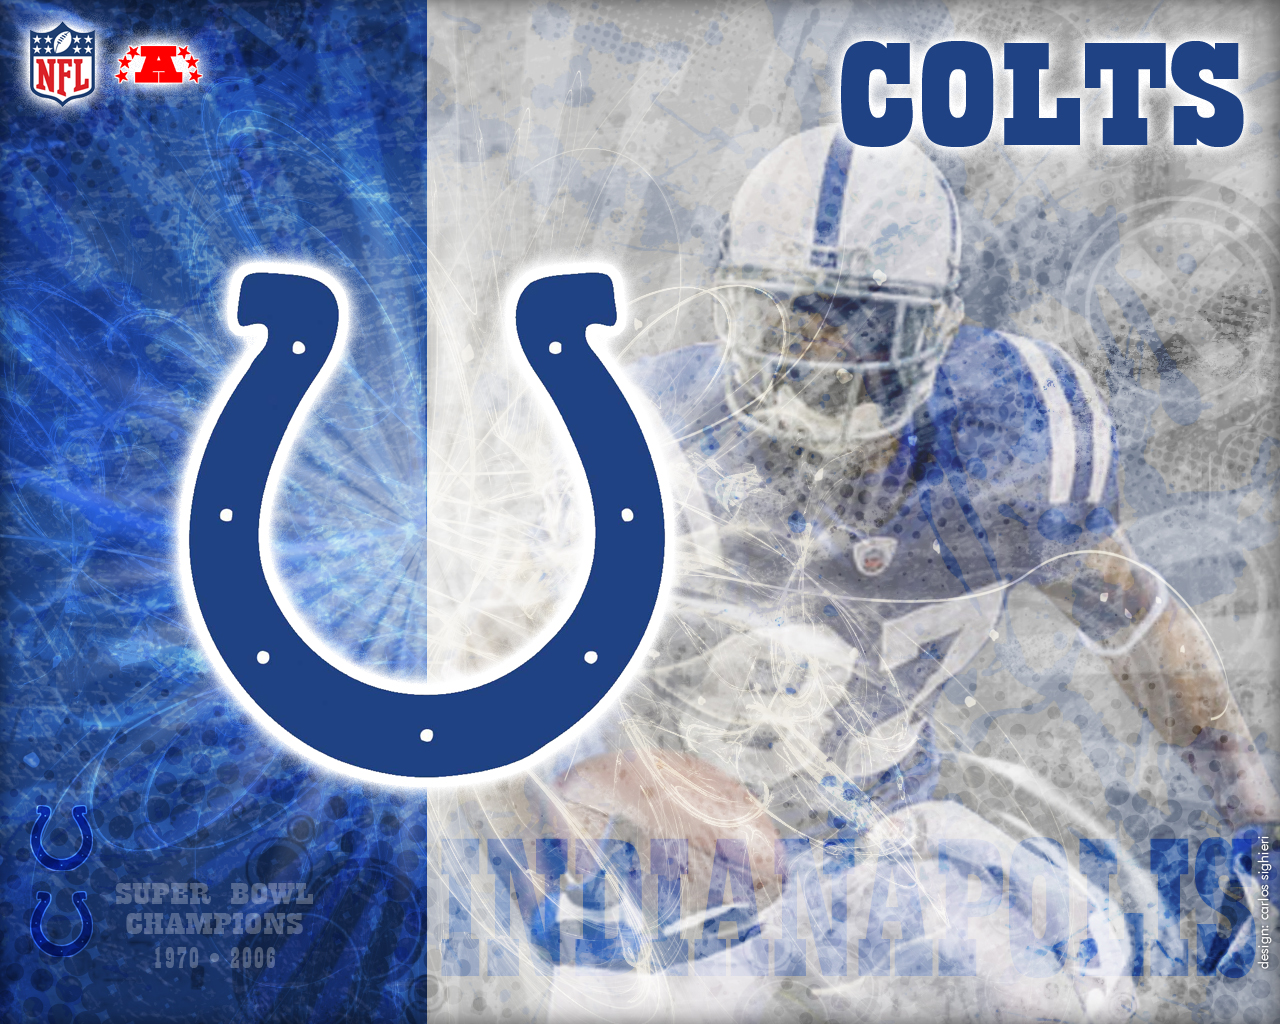 ... Colts wallpaper desktop wallpapers | Indianapolis Colts wallpapers